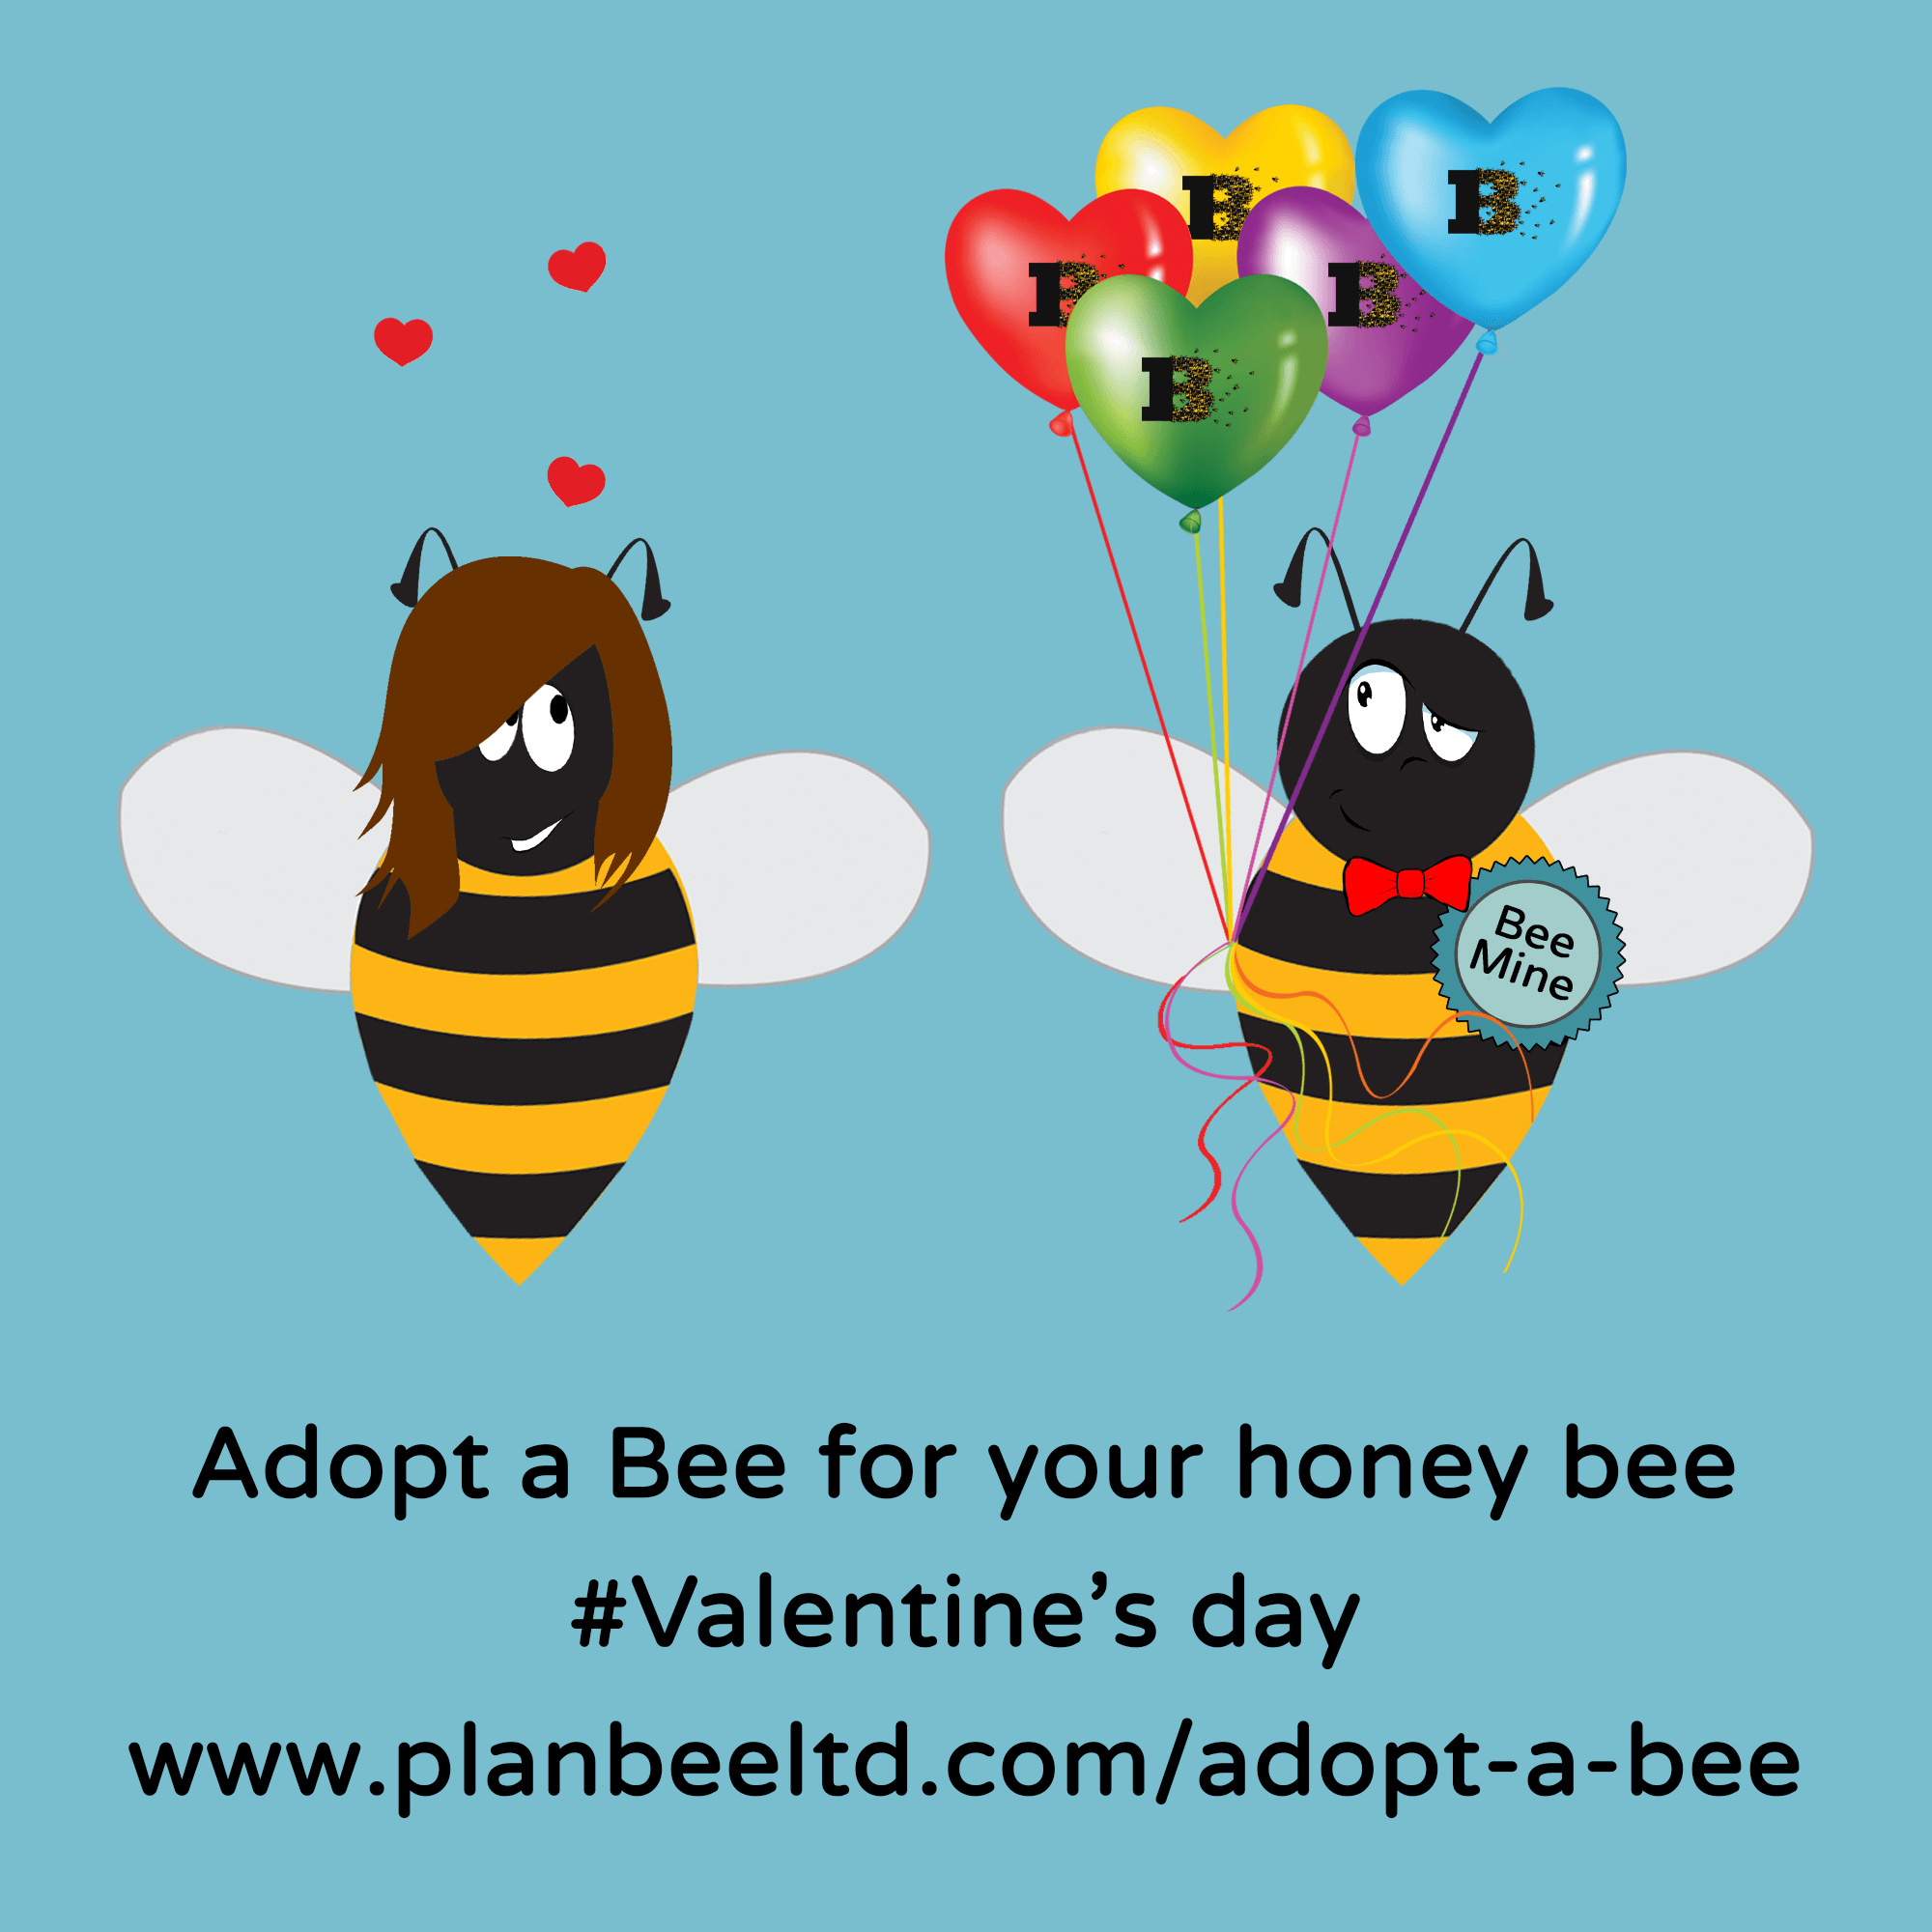 Adopt a Bee for your honey bee #Valentine's day www.planbeeltd.com/adopt-a-bee